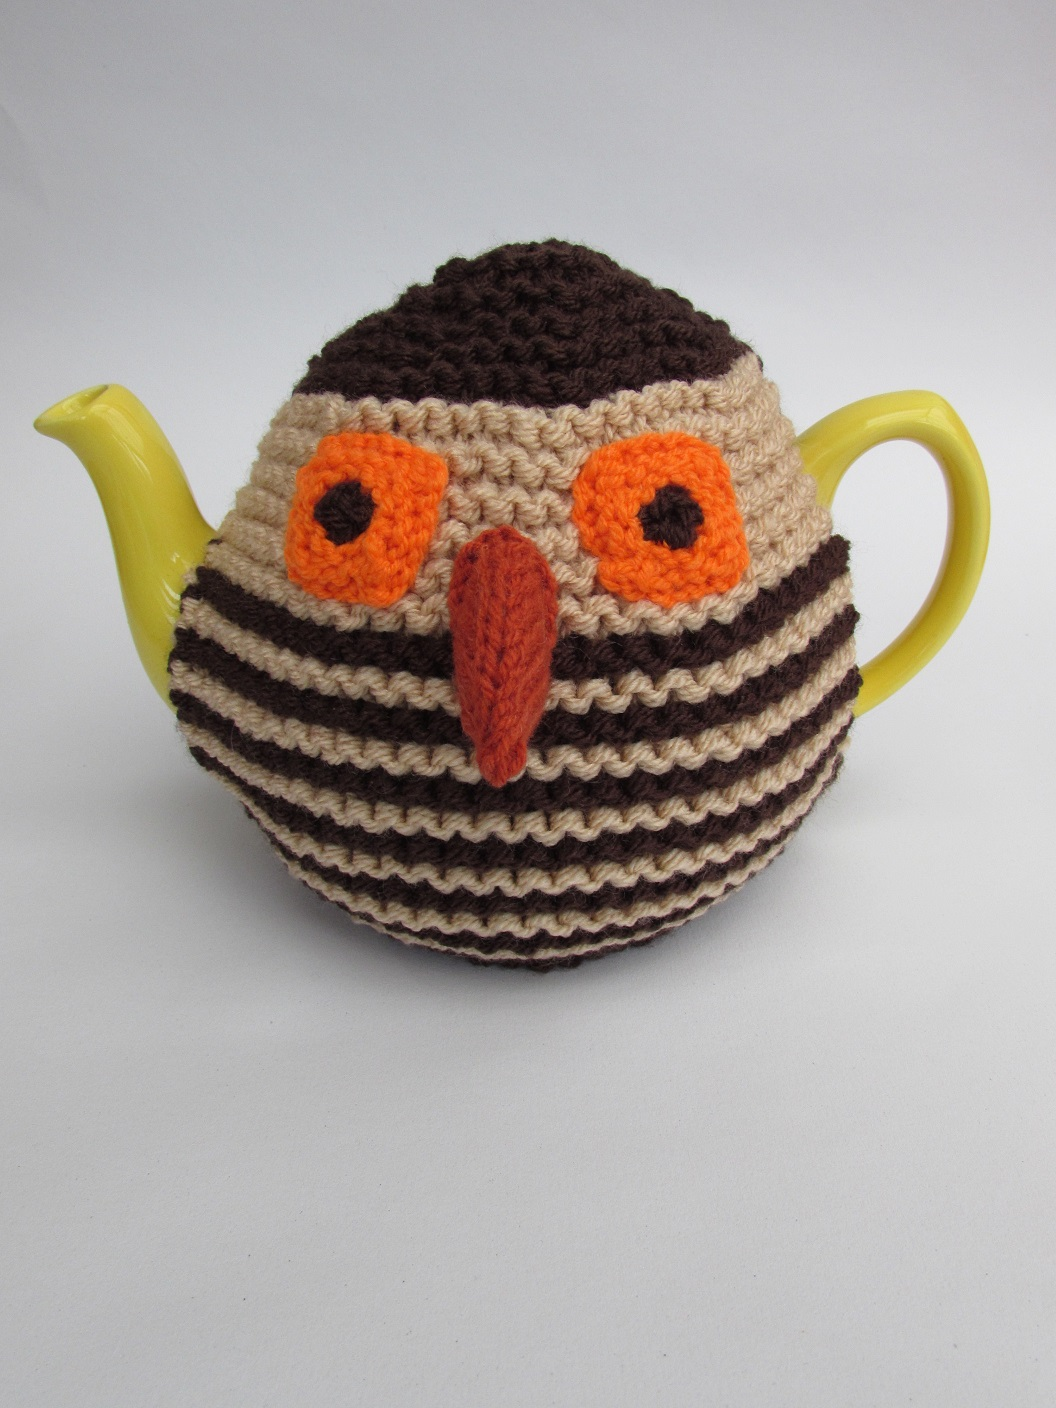 Knitted Owl Tea Cosy Pattern : Three Birds tea cosy knitting pattern